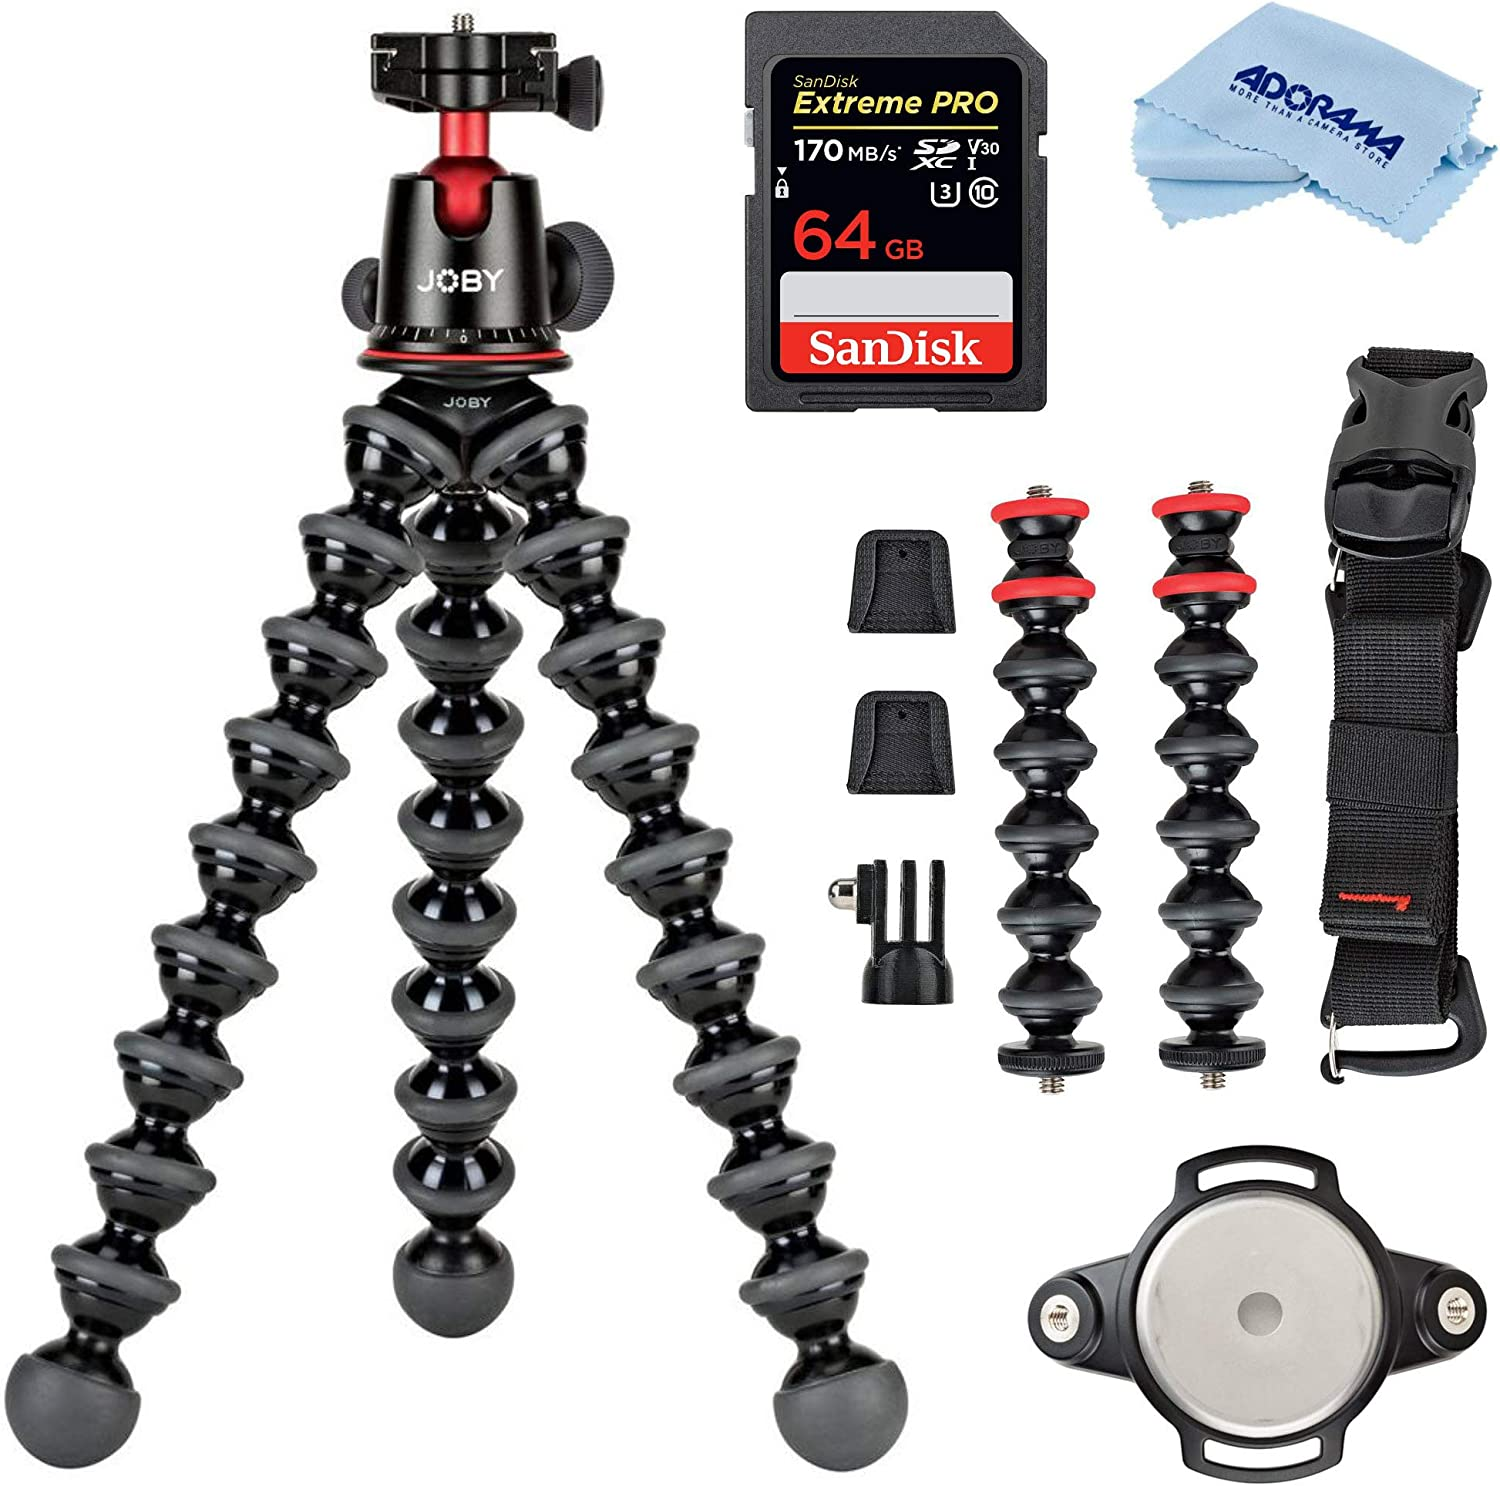 Cloth Rig Upgrade up to 11lbs//5kg Joby GorillaPod 5K Kit Professional Tripod Stand with Ball Head for DSLR or Mirrorless Cameras with Lens Black//Charcoal Bundle with 64GB SD Card